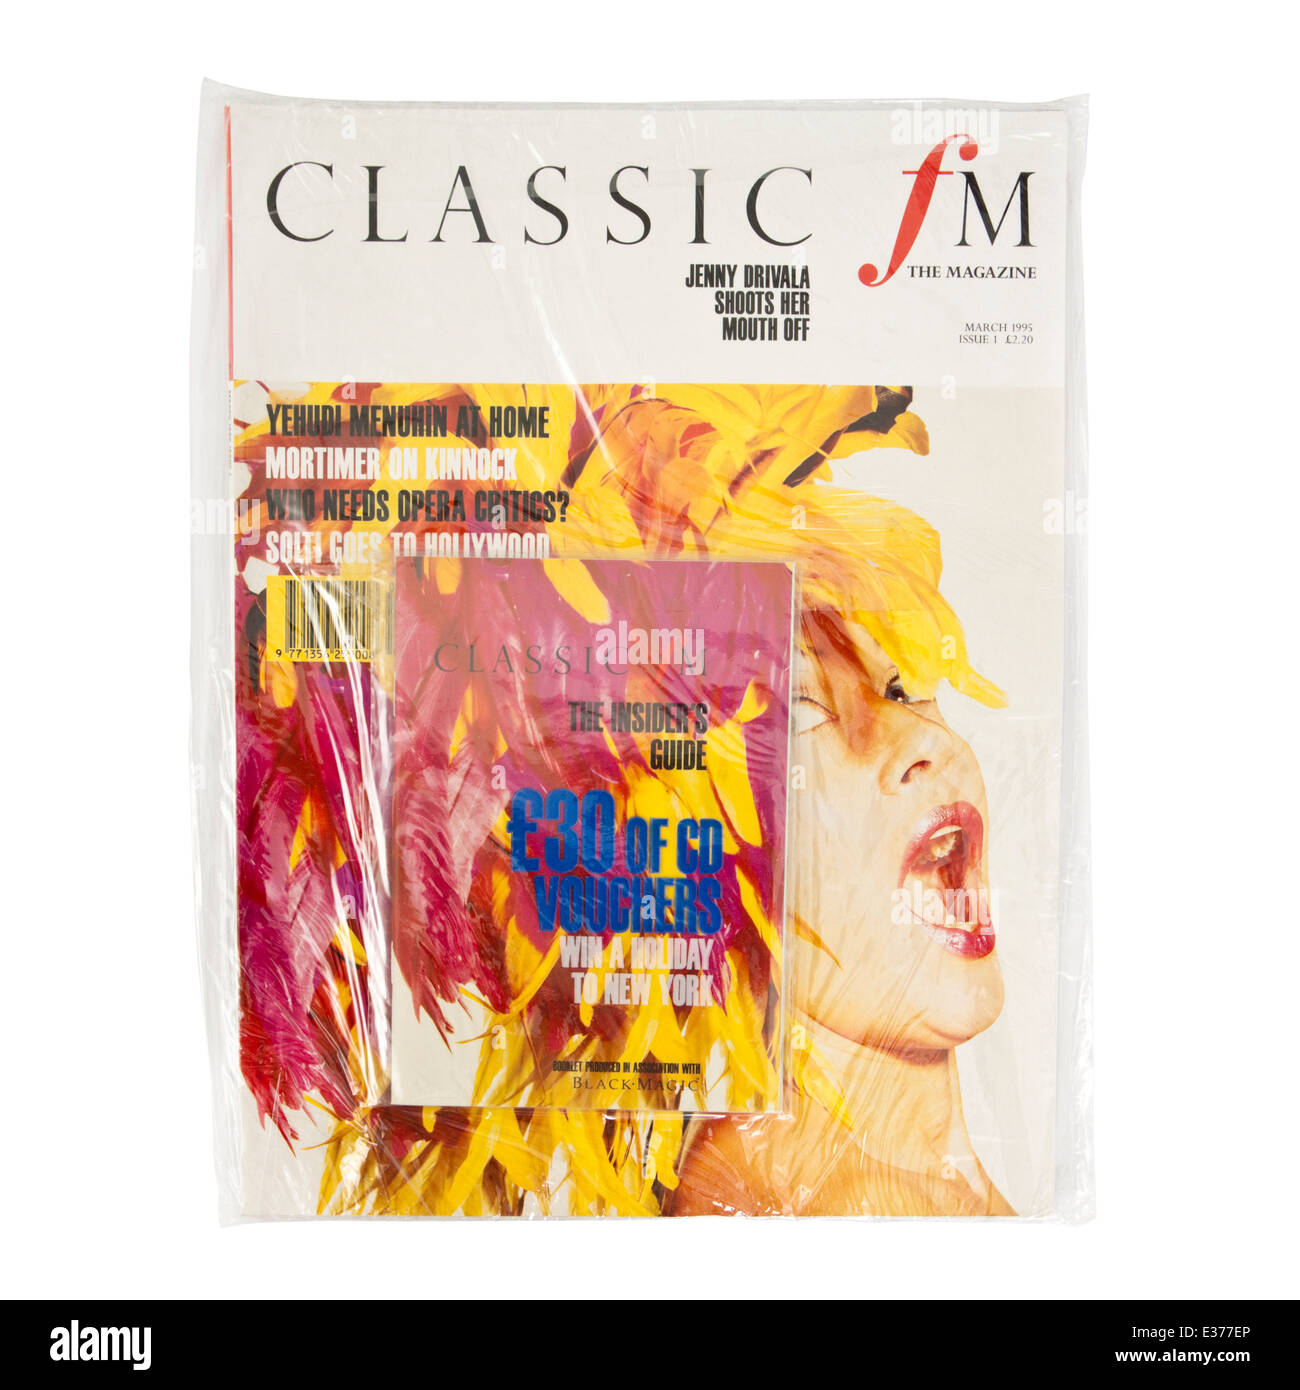 Unopened copy of the very first issue of Classic FM magazine from March 1995. - Stock Image